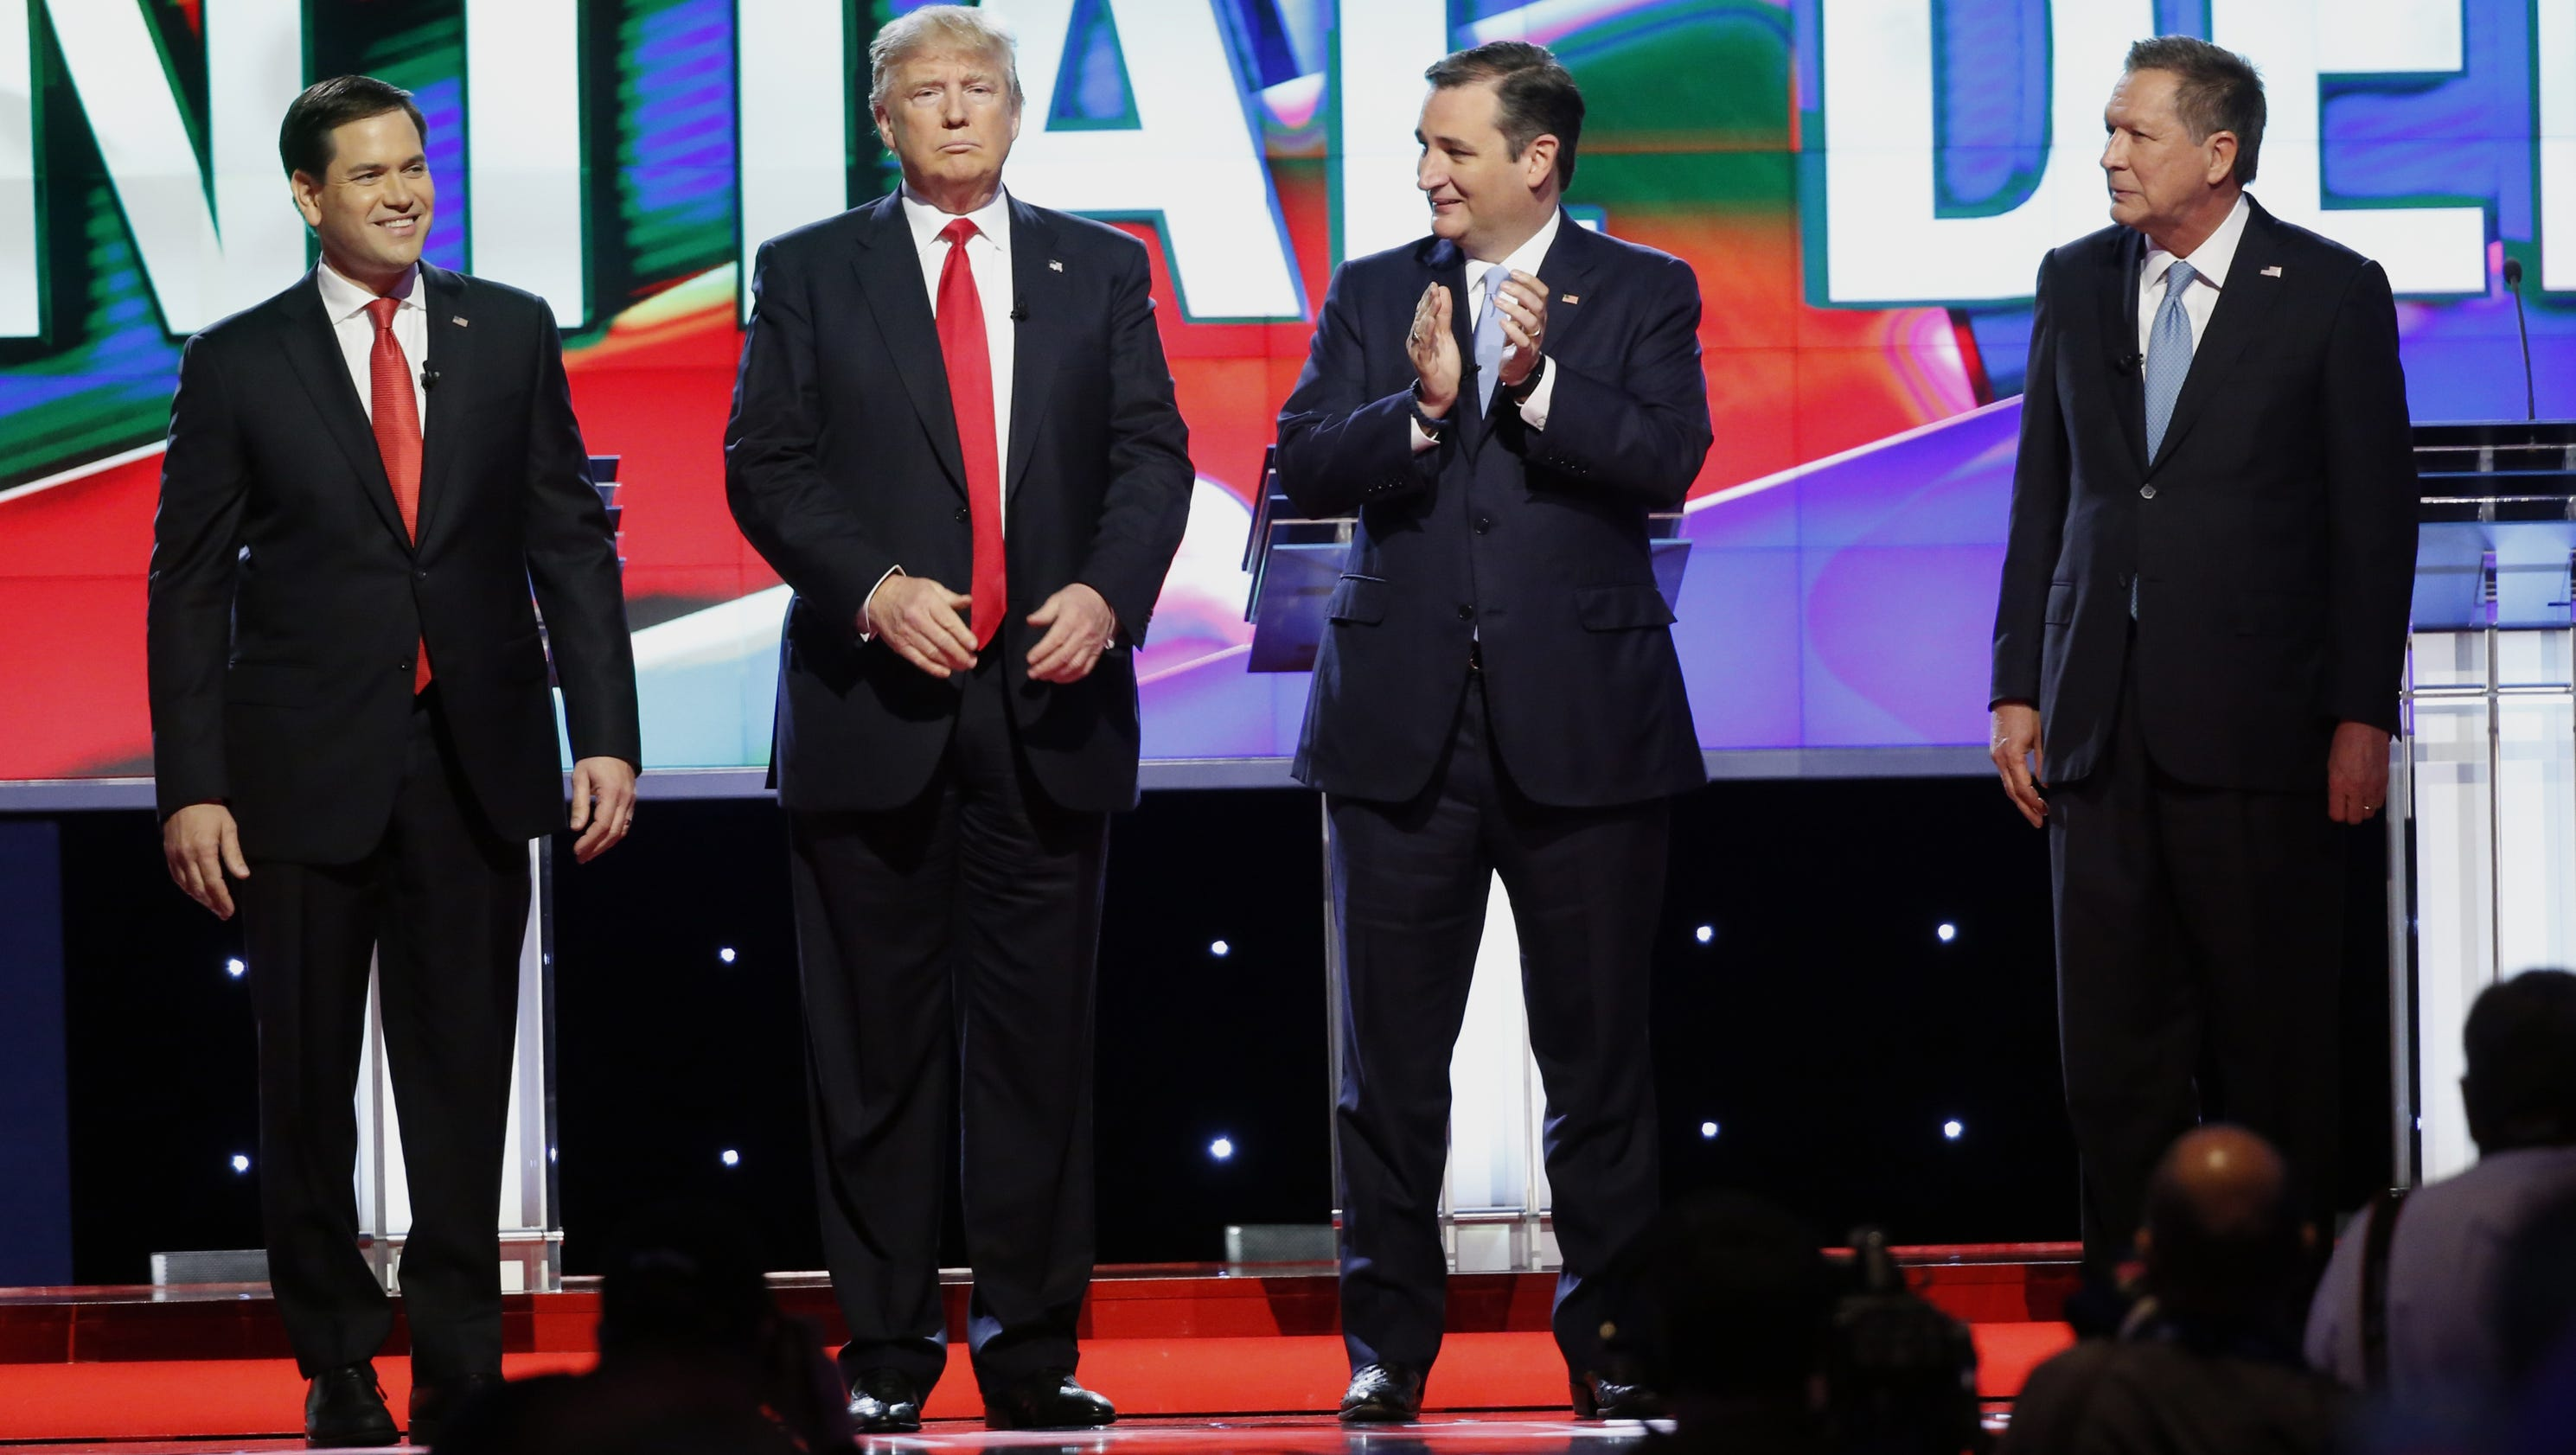 12th Republican debate: Highlights from Miami